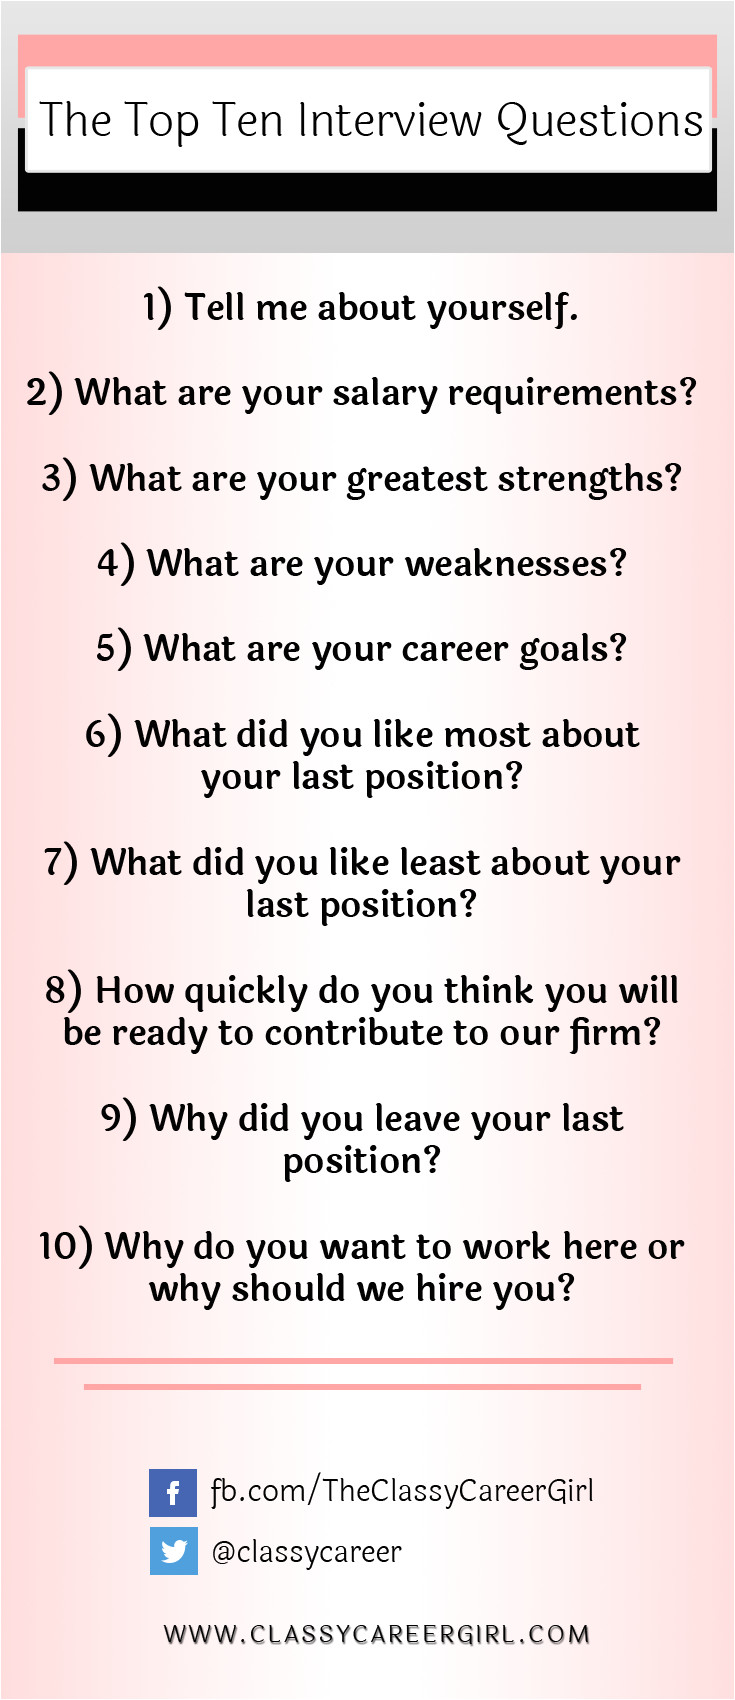 resume writer job interview questions